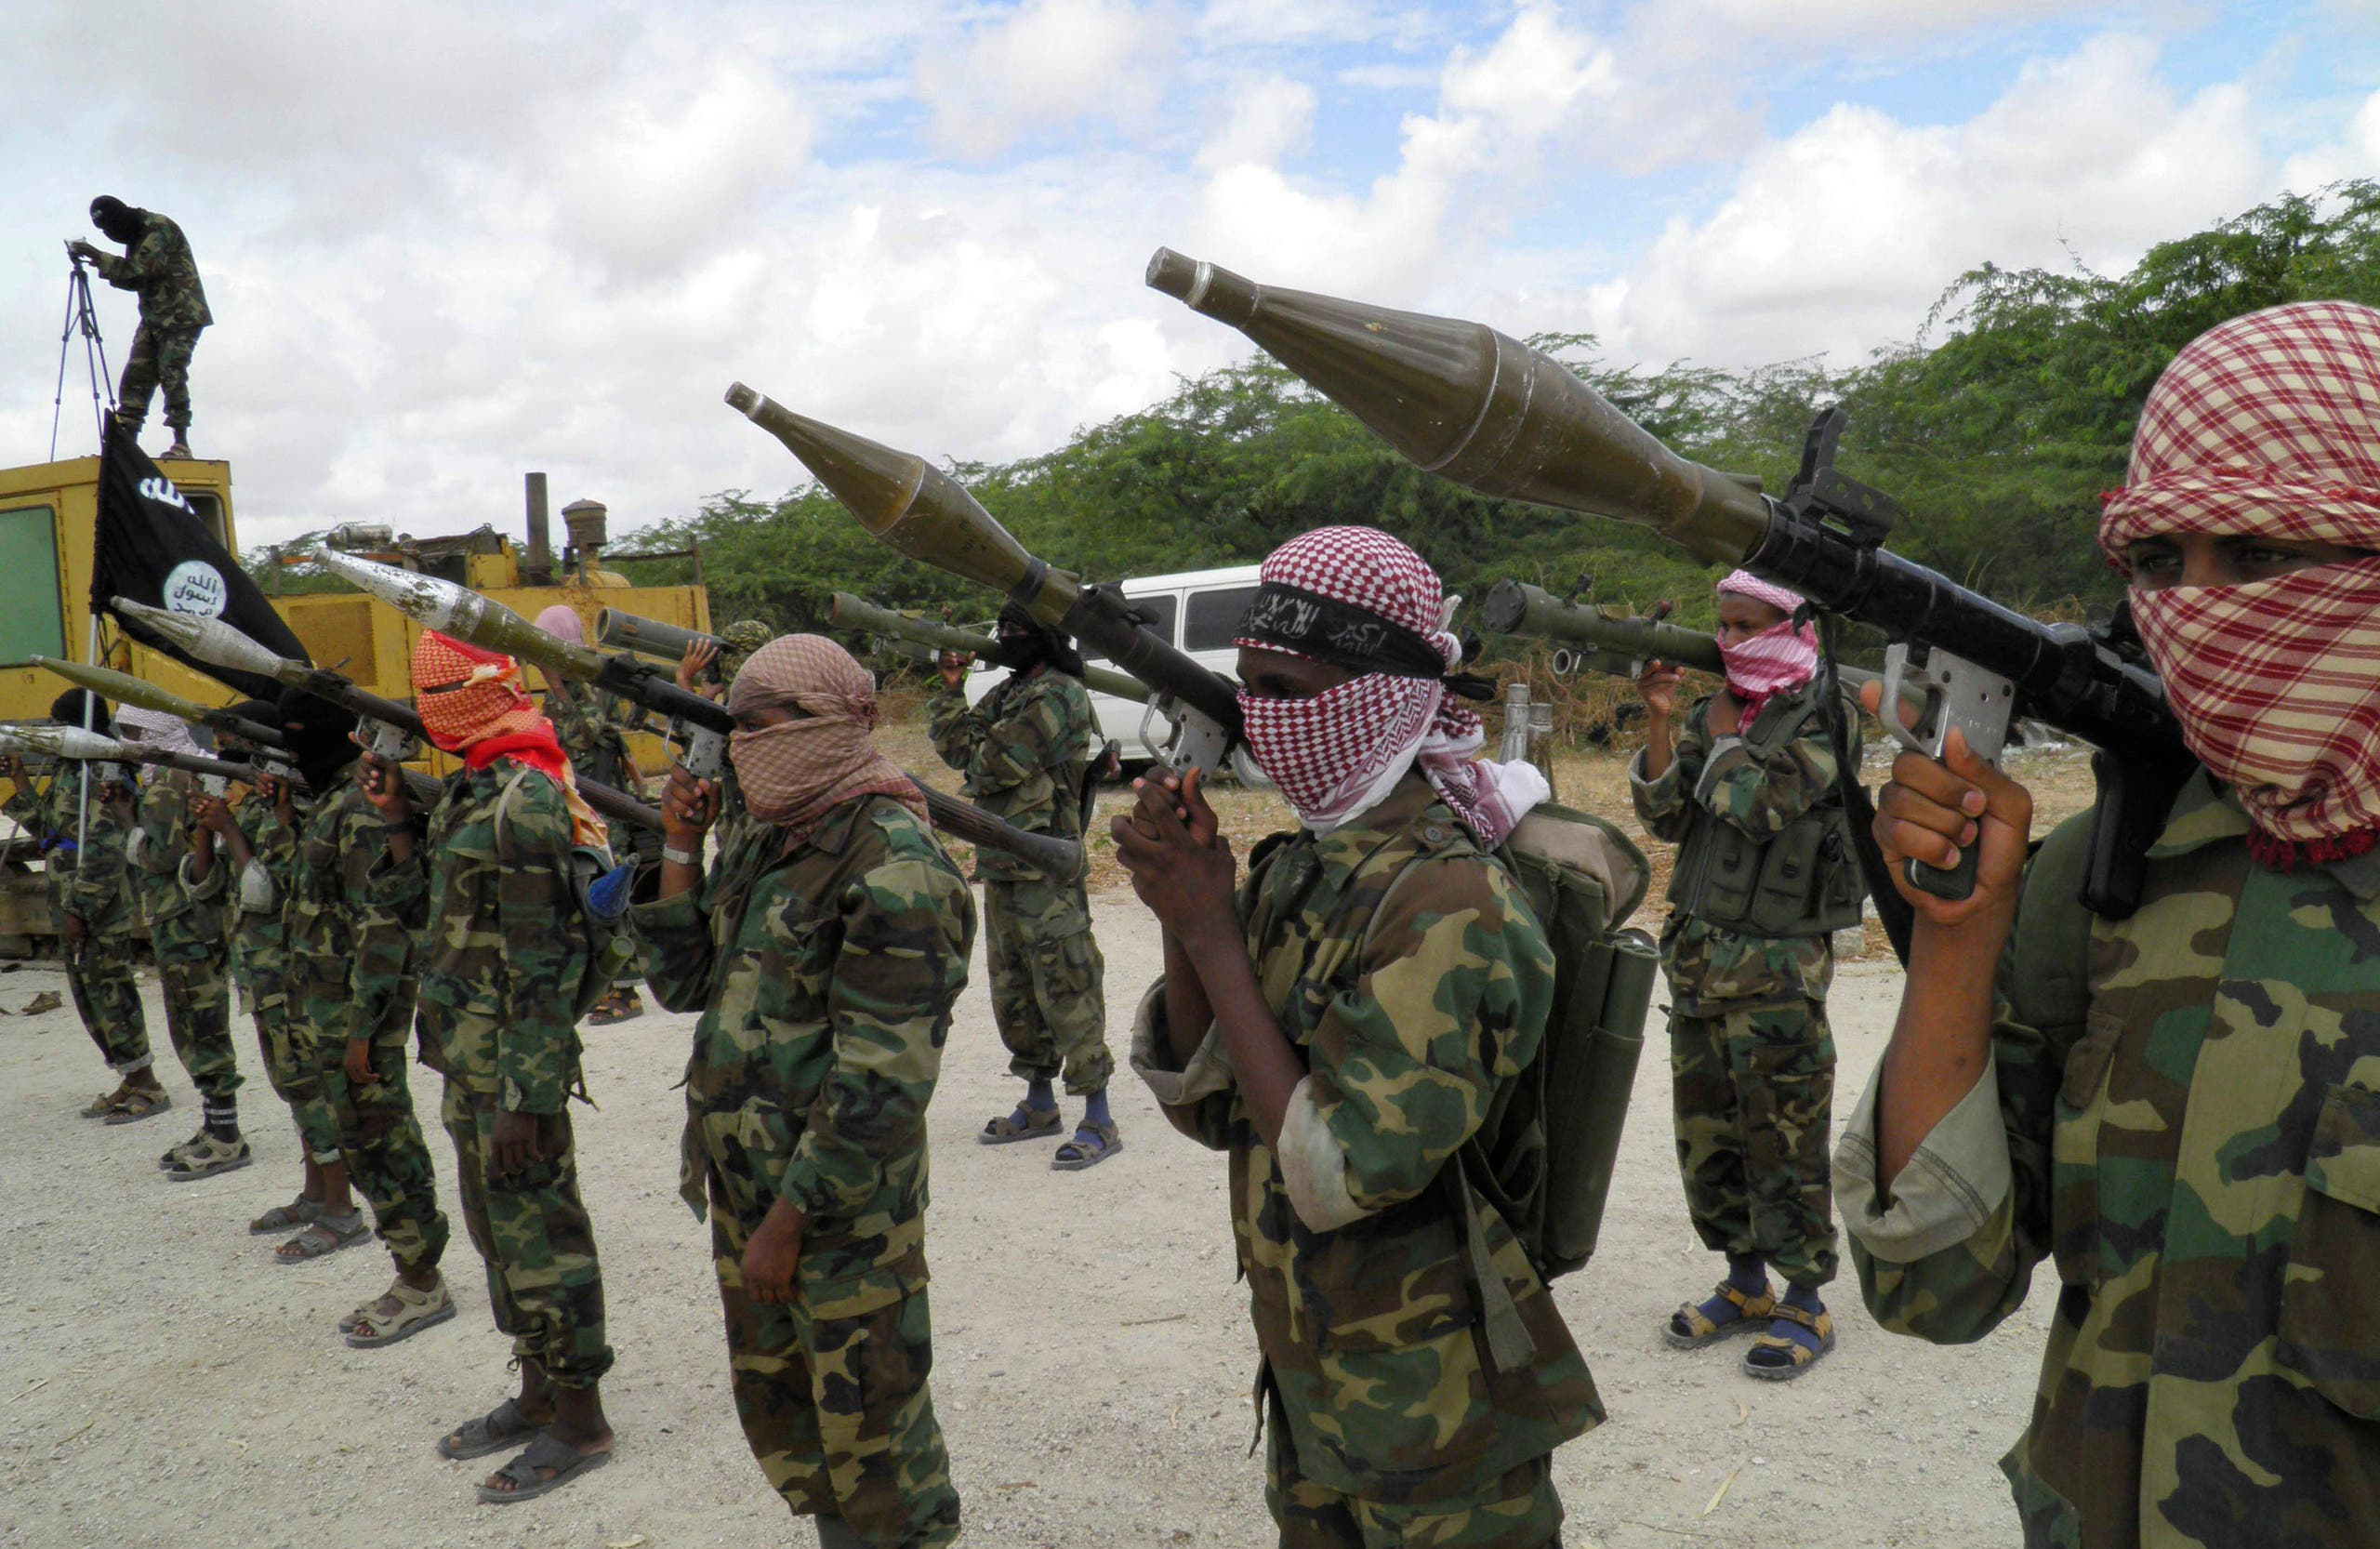 A file photo shows al-Shabaab fighters display weapons as they conduct military exercises in northern Mogadishu, Somalia. (AP)